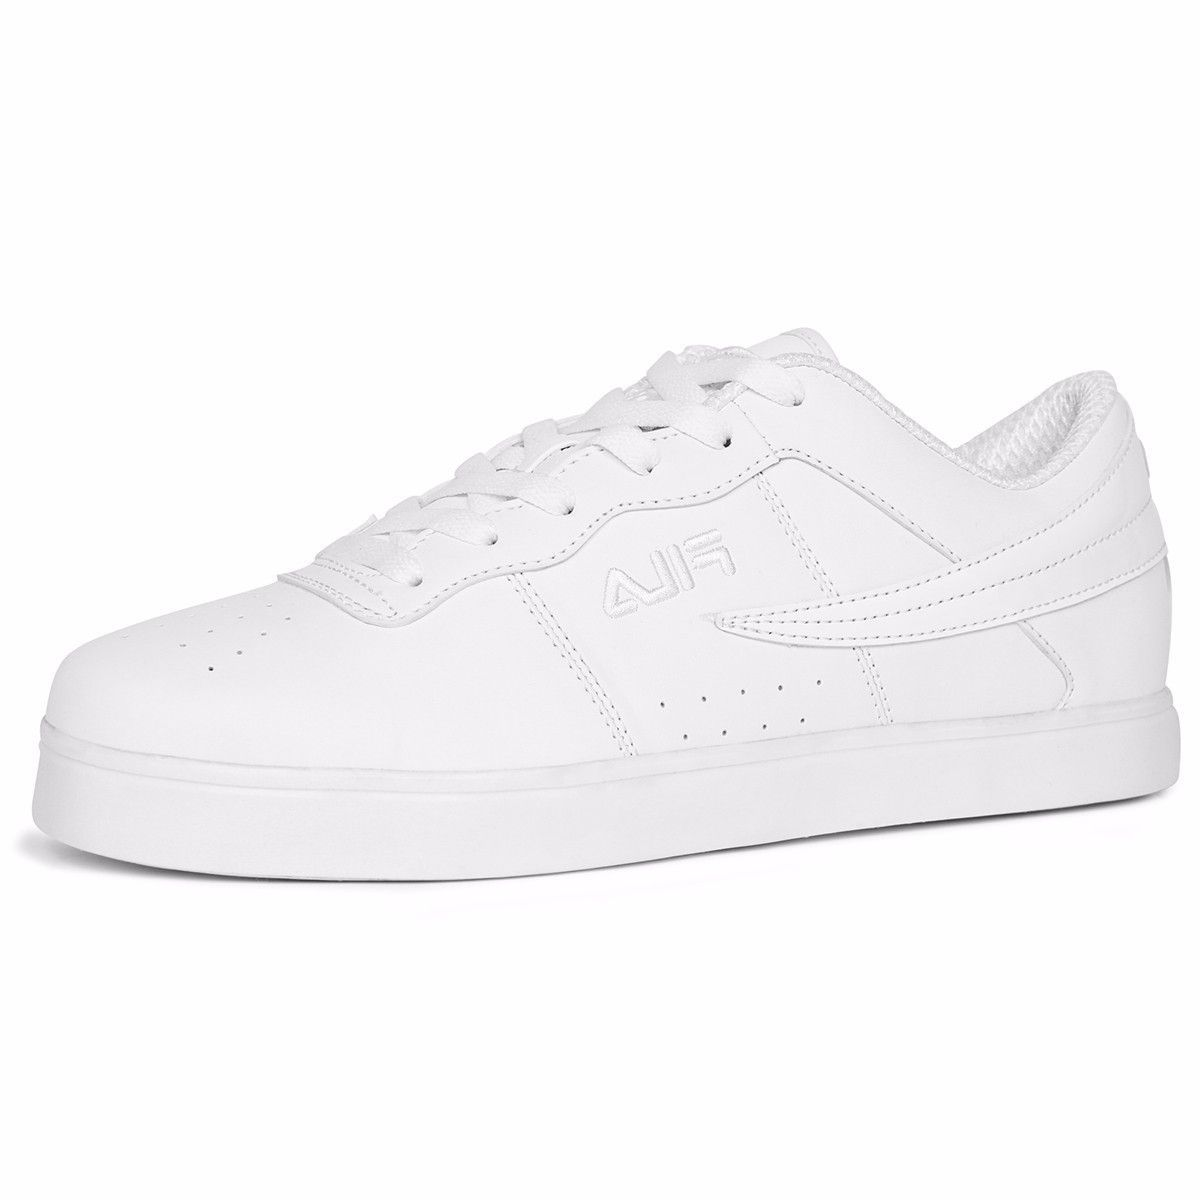 Fila - Men's F - 13 Lite Low Sneaker - White